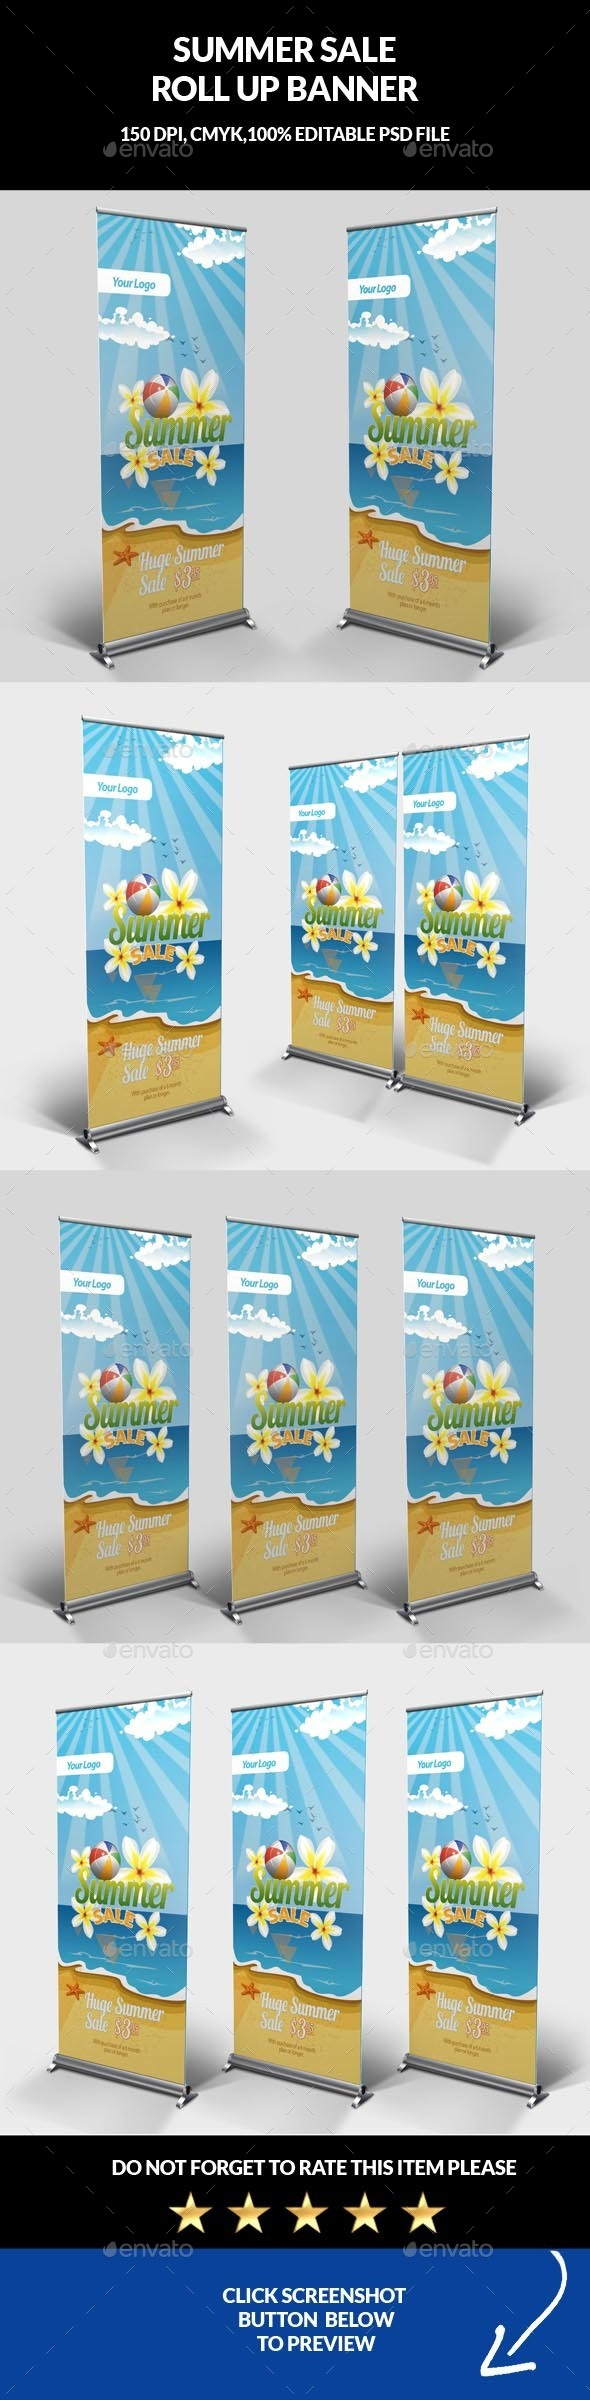 Summer Sale Roll Up Banner - Signage Print Templates